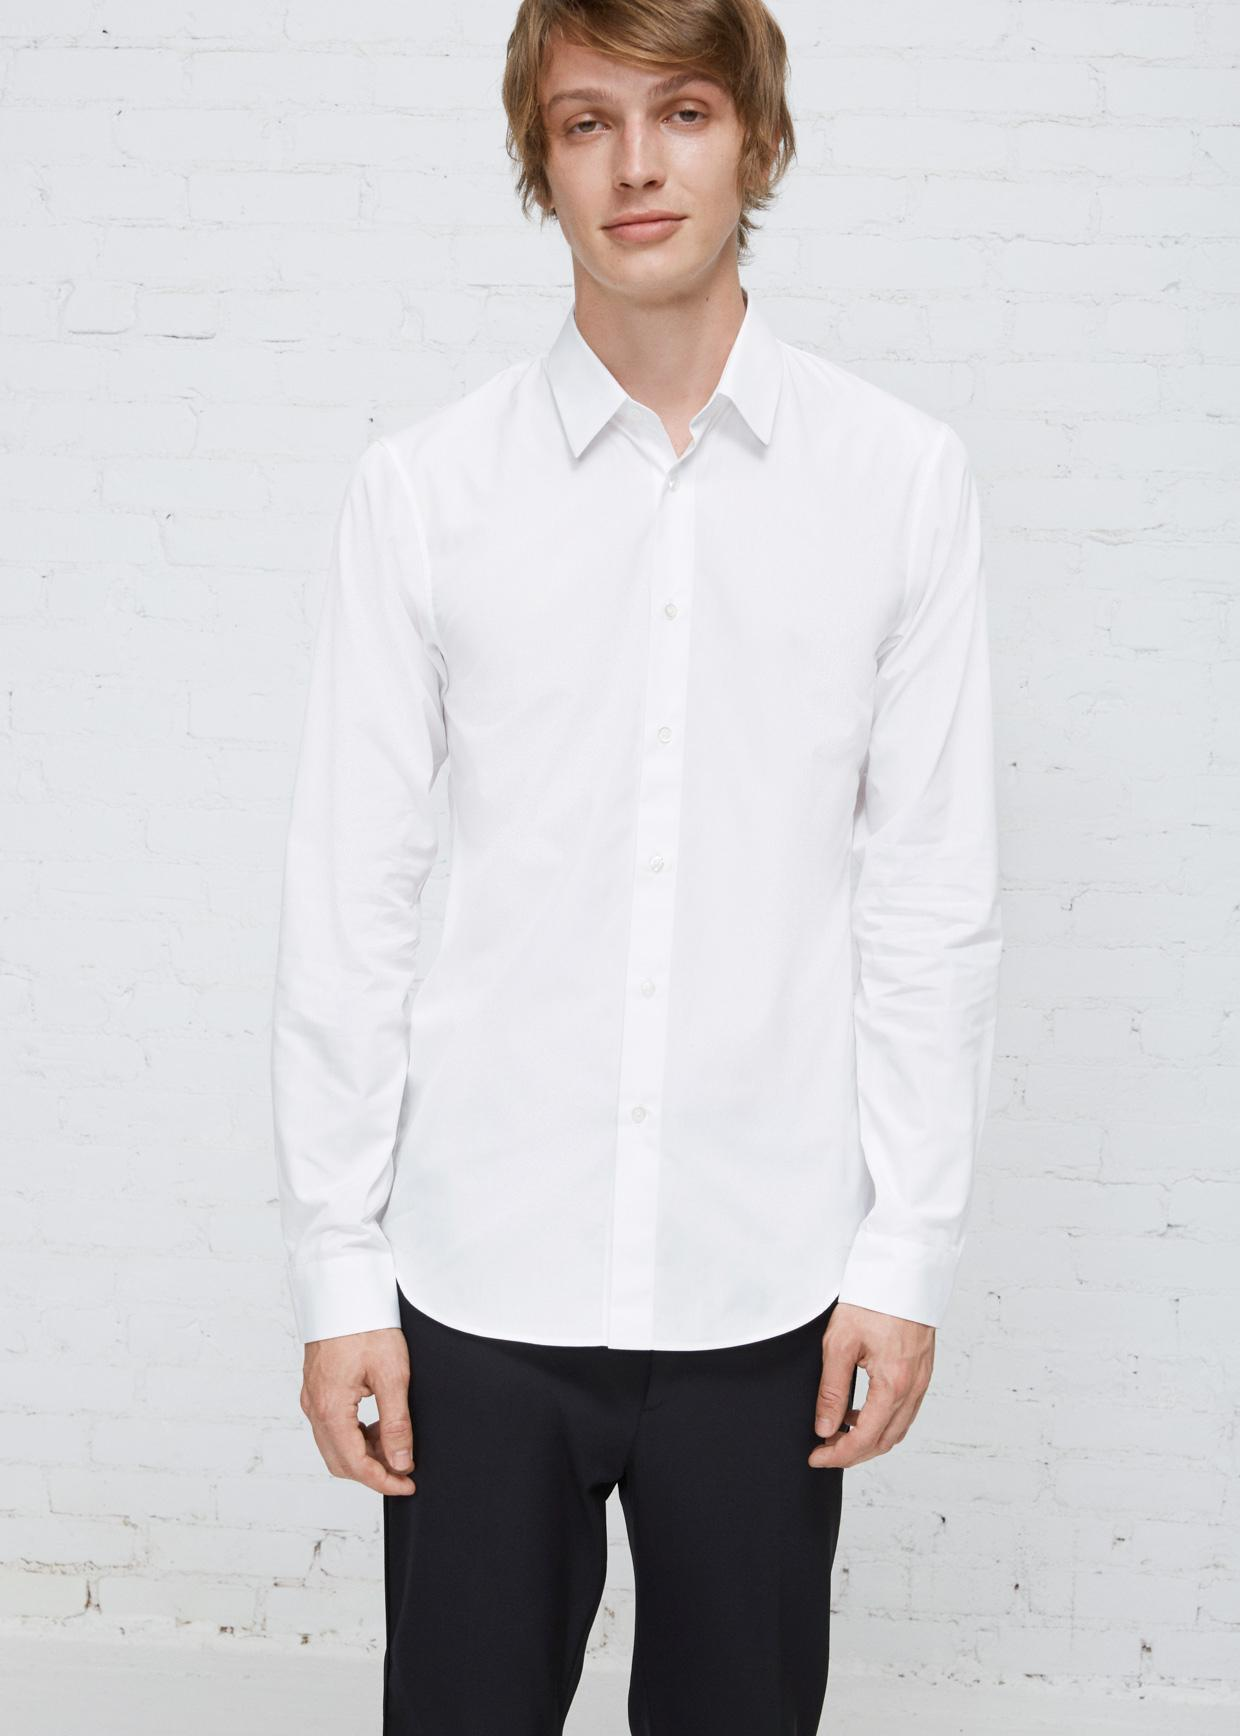 lyst jil sander white baia shirt in white for men. Black Bedroom Furniture Sets. Home Design Ideas